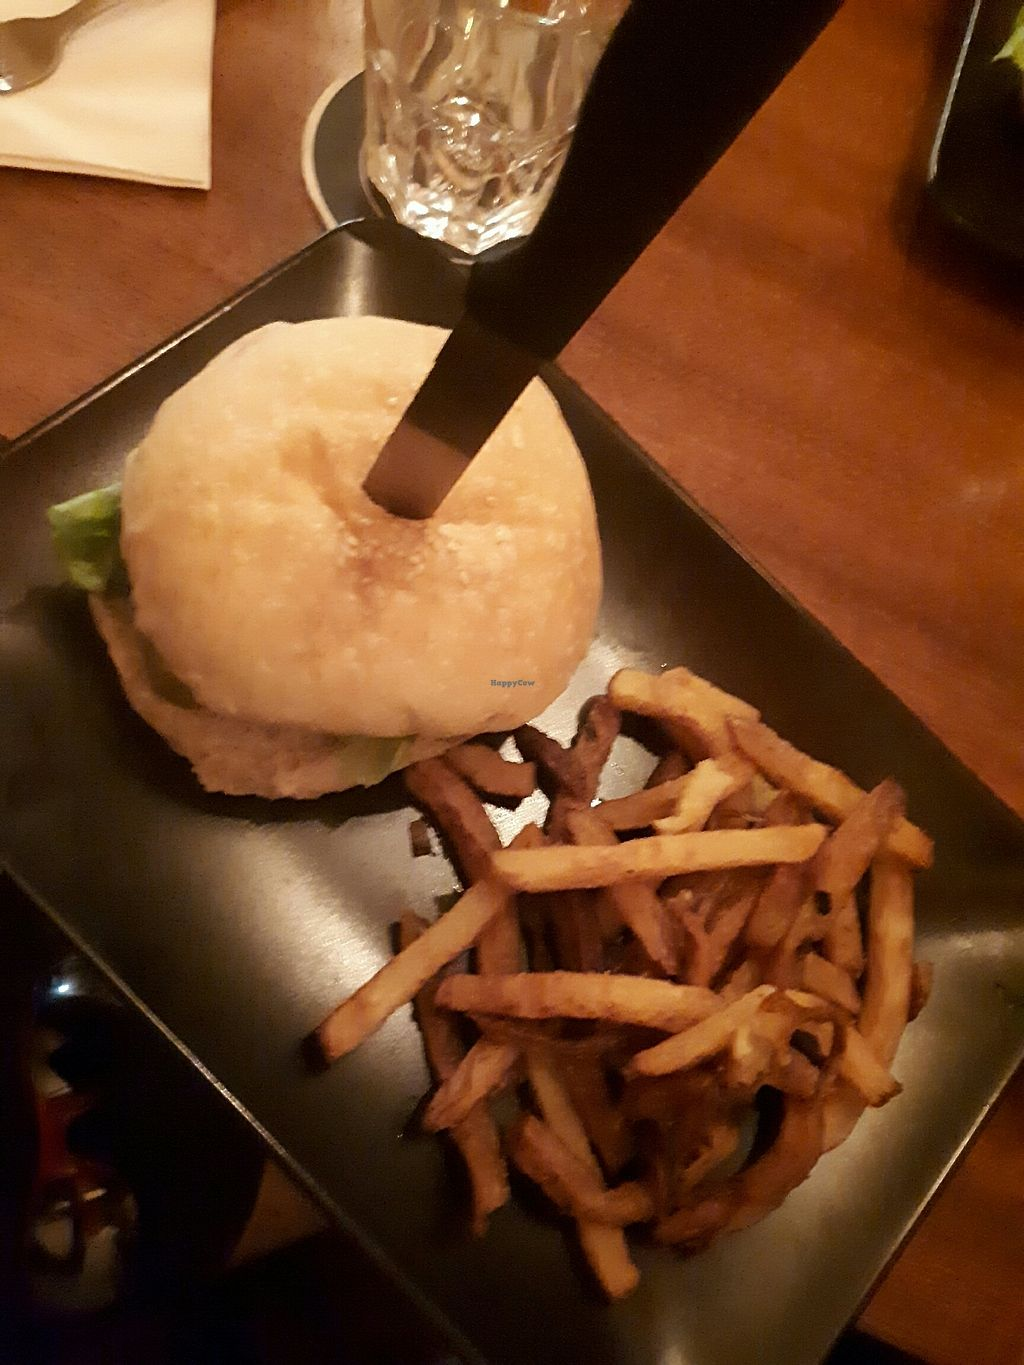 """Photo of Au Nouveau Monde  by <a href=""""/members/profile/PascalB"""">PascalB</a> <br/>Tofu burger <br/> July 9, 2017  - <a href='/contact/abuse/image/88646/278101'>Report</a>"""